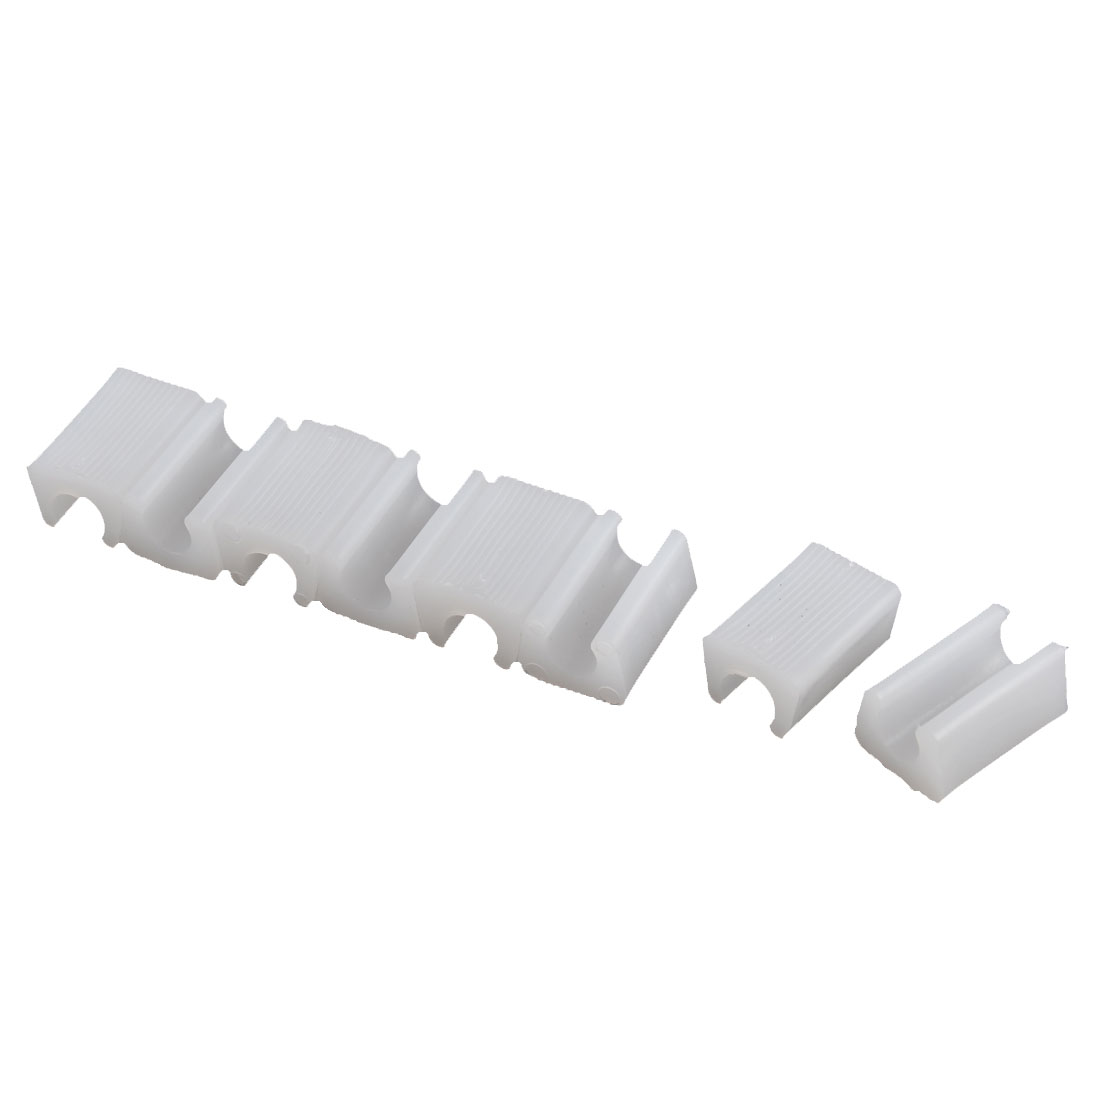 Chair Foot Plastic Floor Glides Tubing Caps Cover Protector White 10mm Dia 8 Pcs